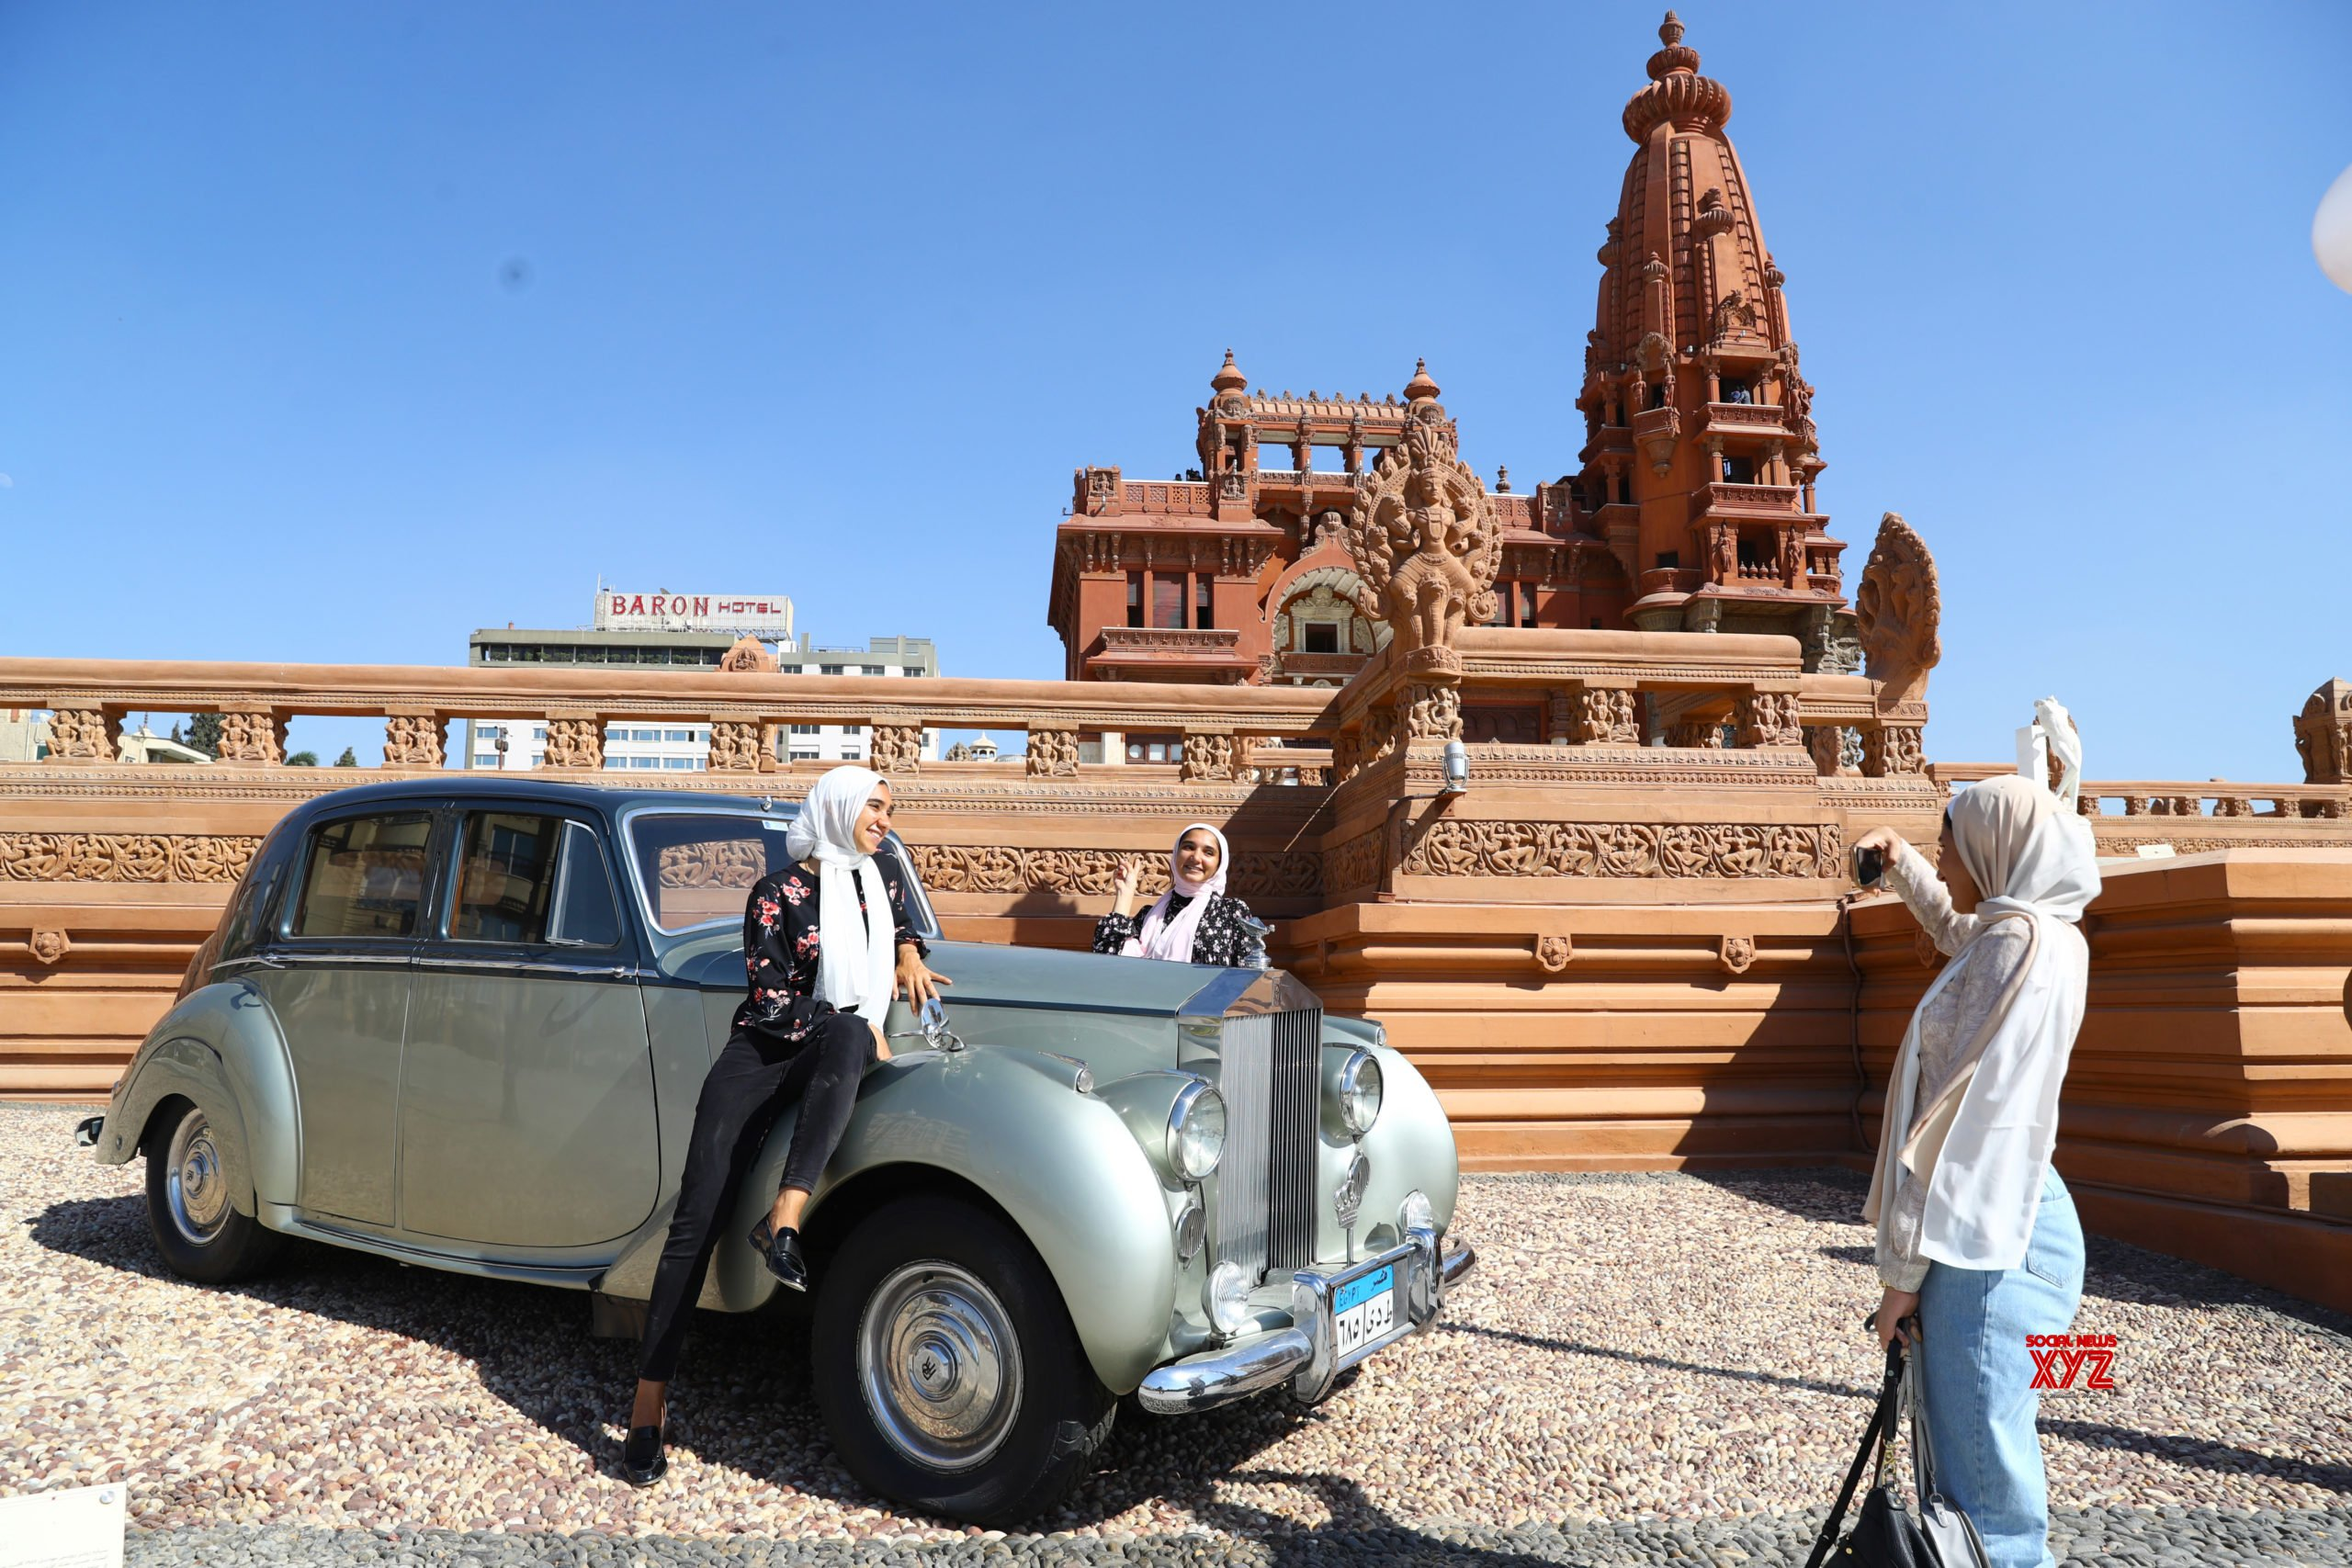 EGYPT - CAIRO - BARON EMPAIN PALACE - REOPENING #Gallery